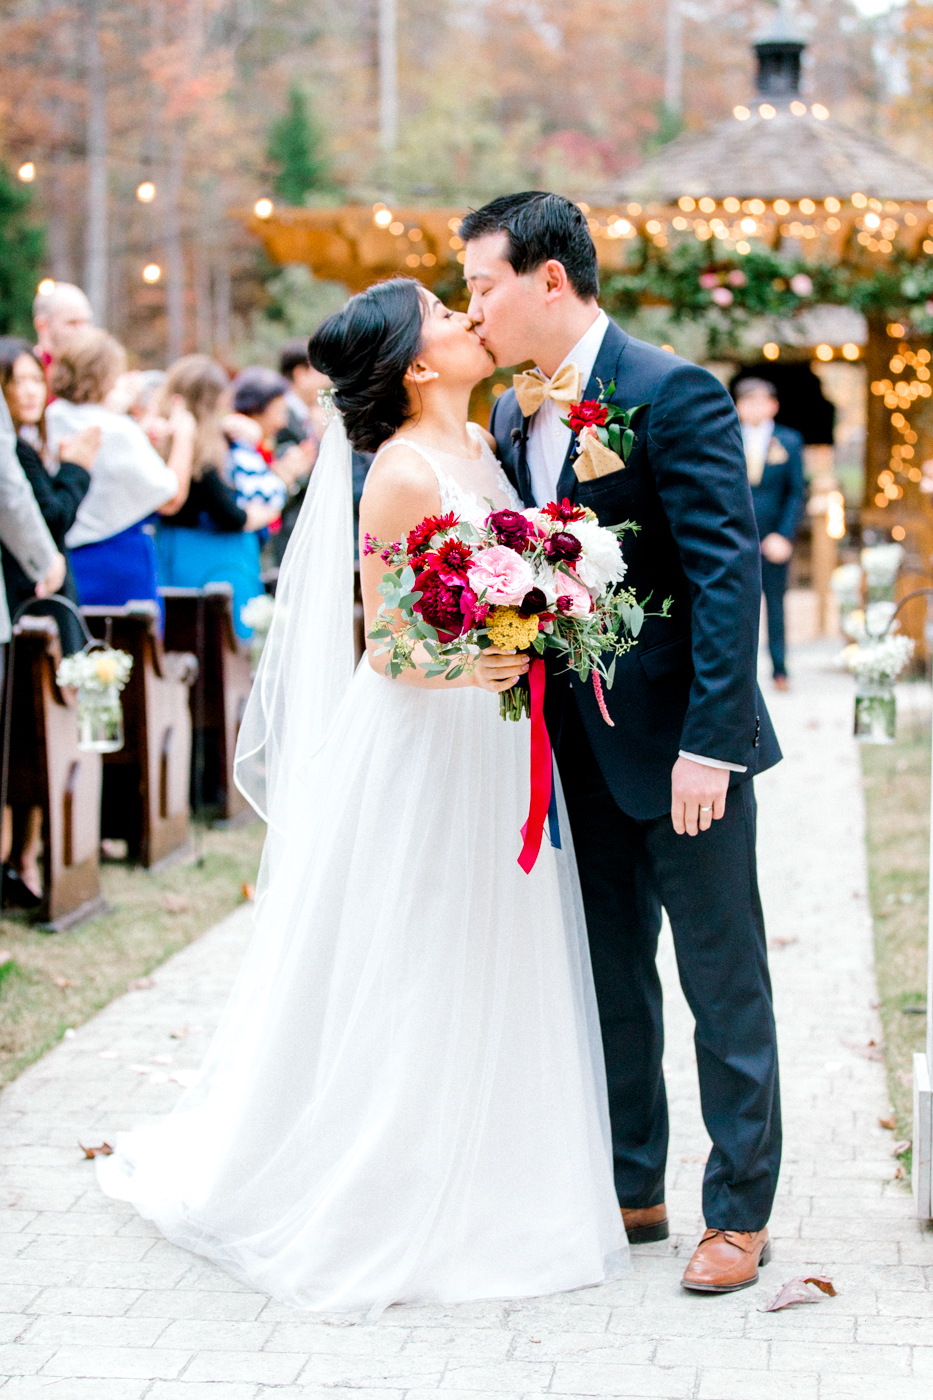 four corners photography helena and sunny rockys lake estate wedding north georgia wedding photographer best atlanta wedding photographer (27 of 51).jpg